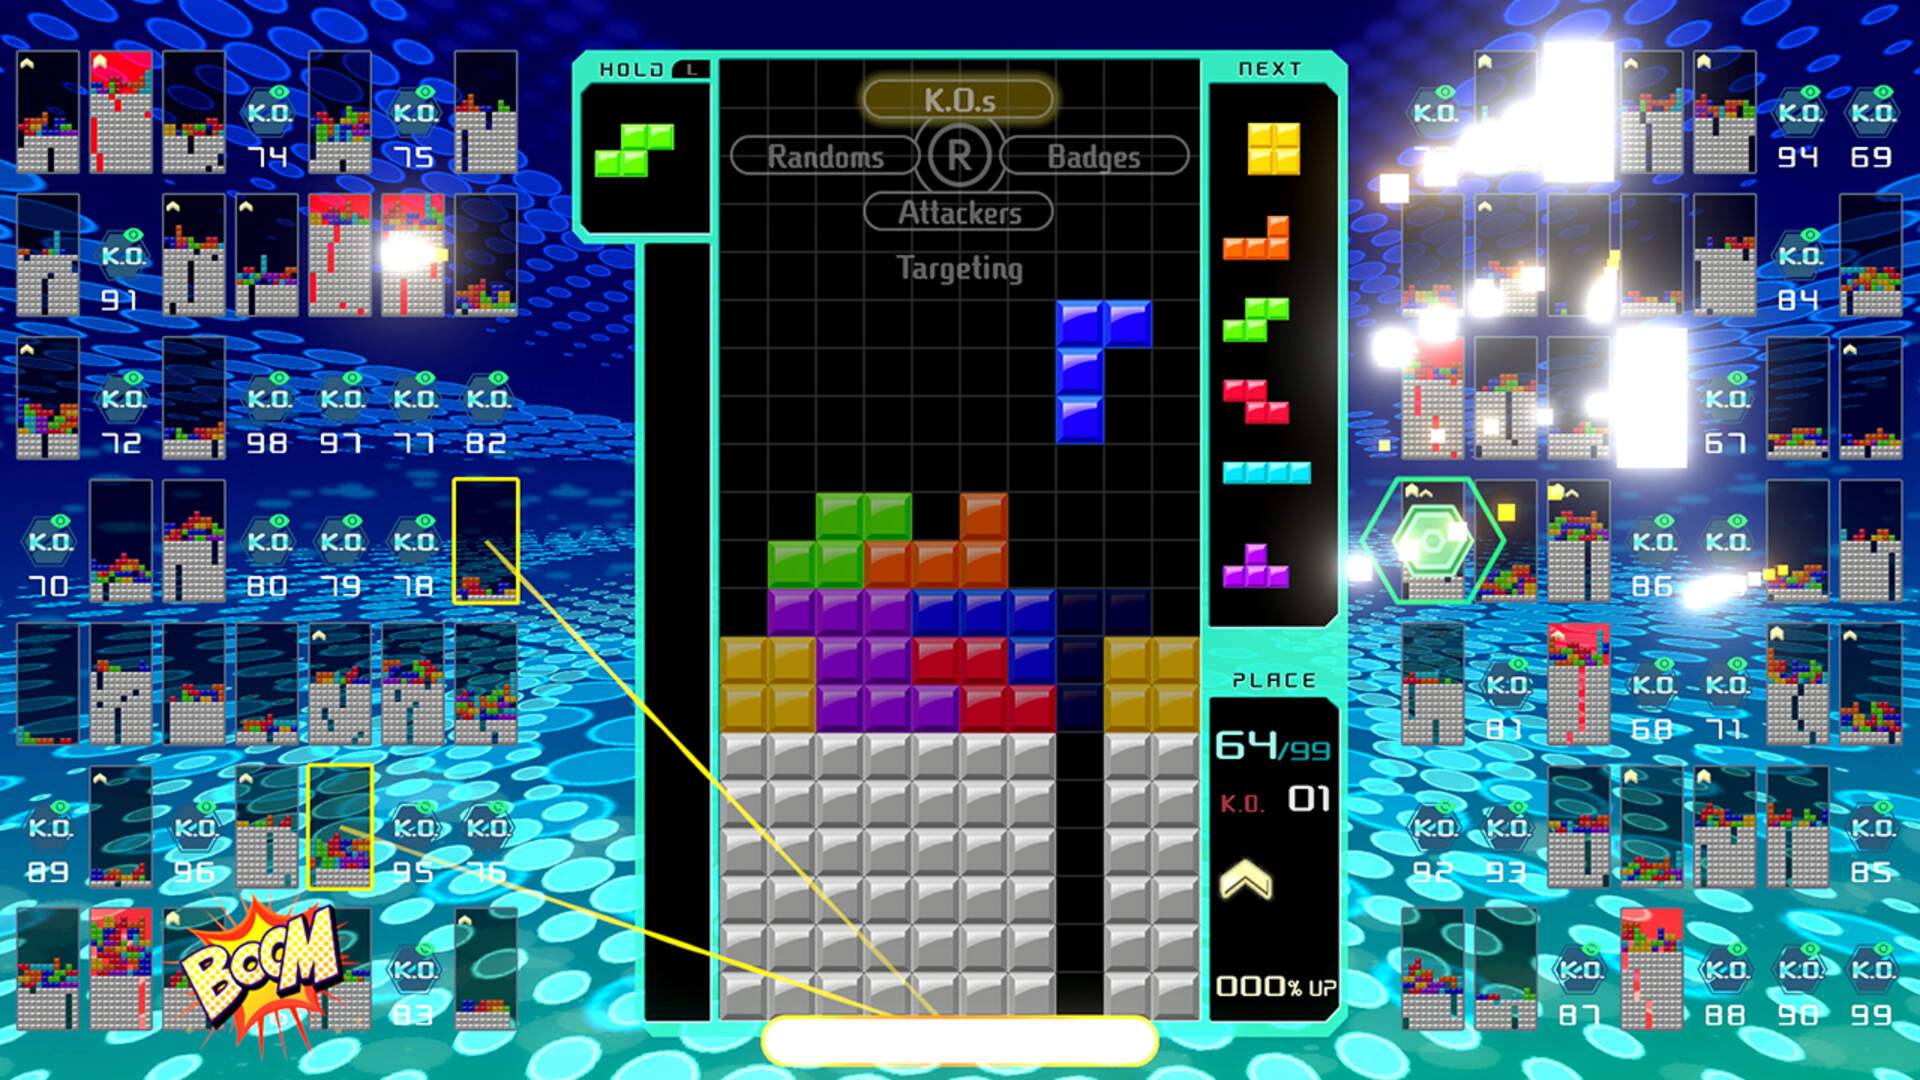 Tetris 99 Tips - How to Play Tetris 99 and Win at Tetris Battle Royale